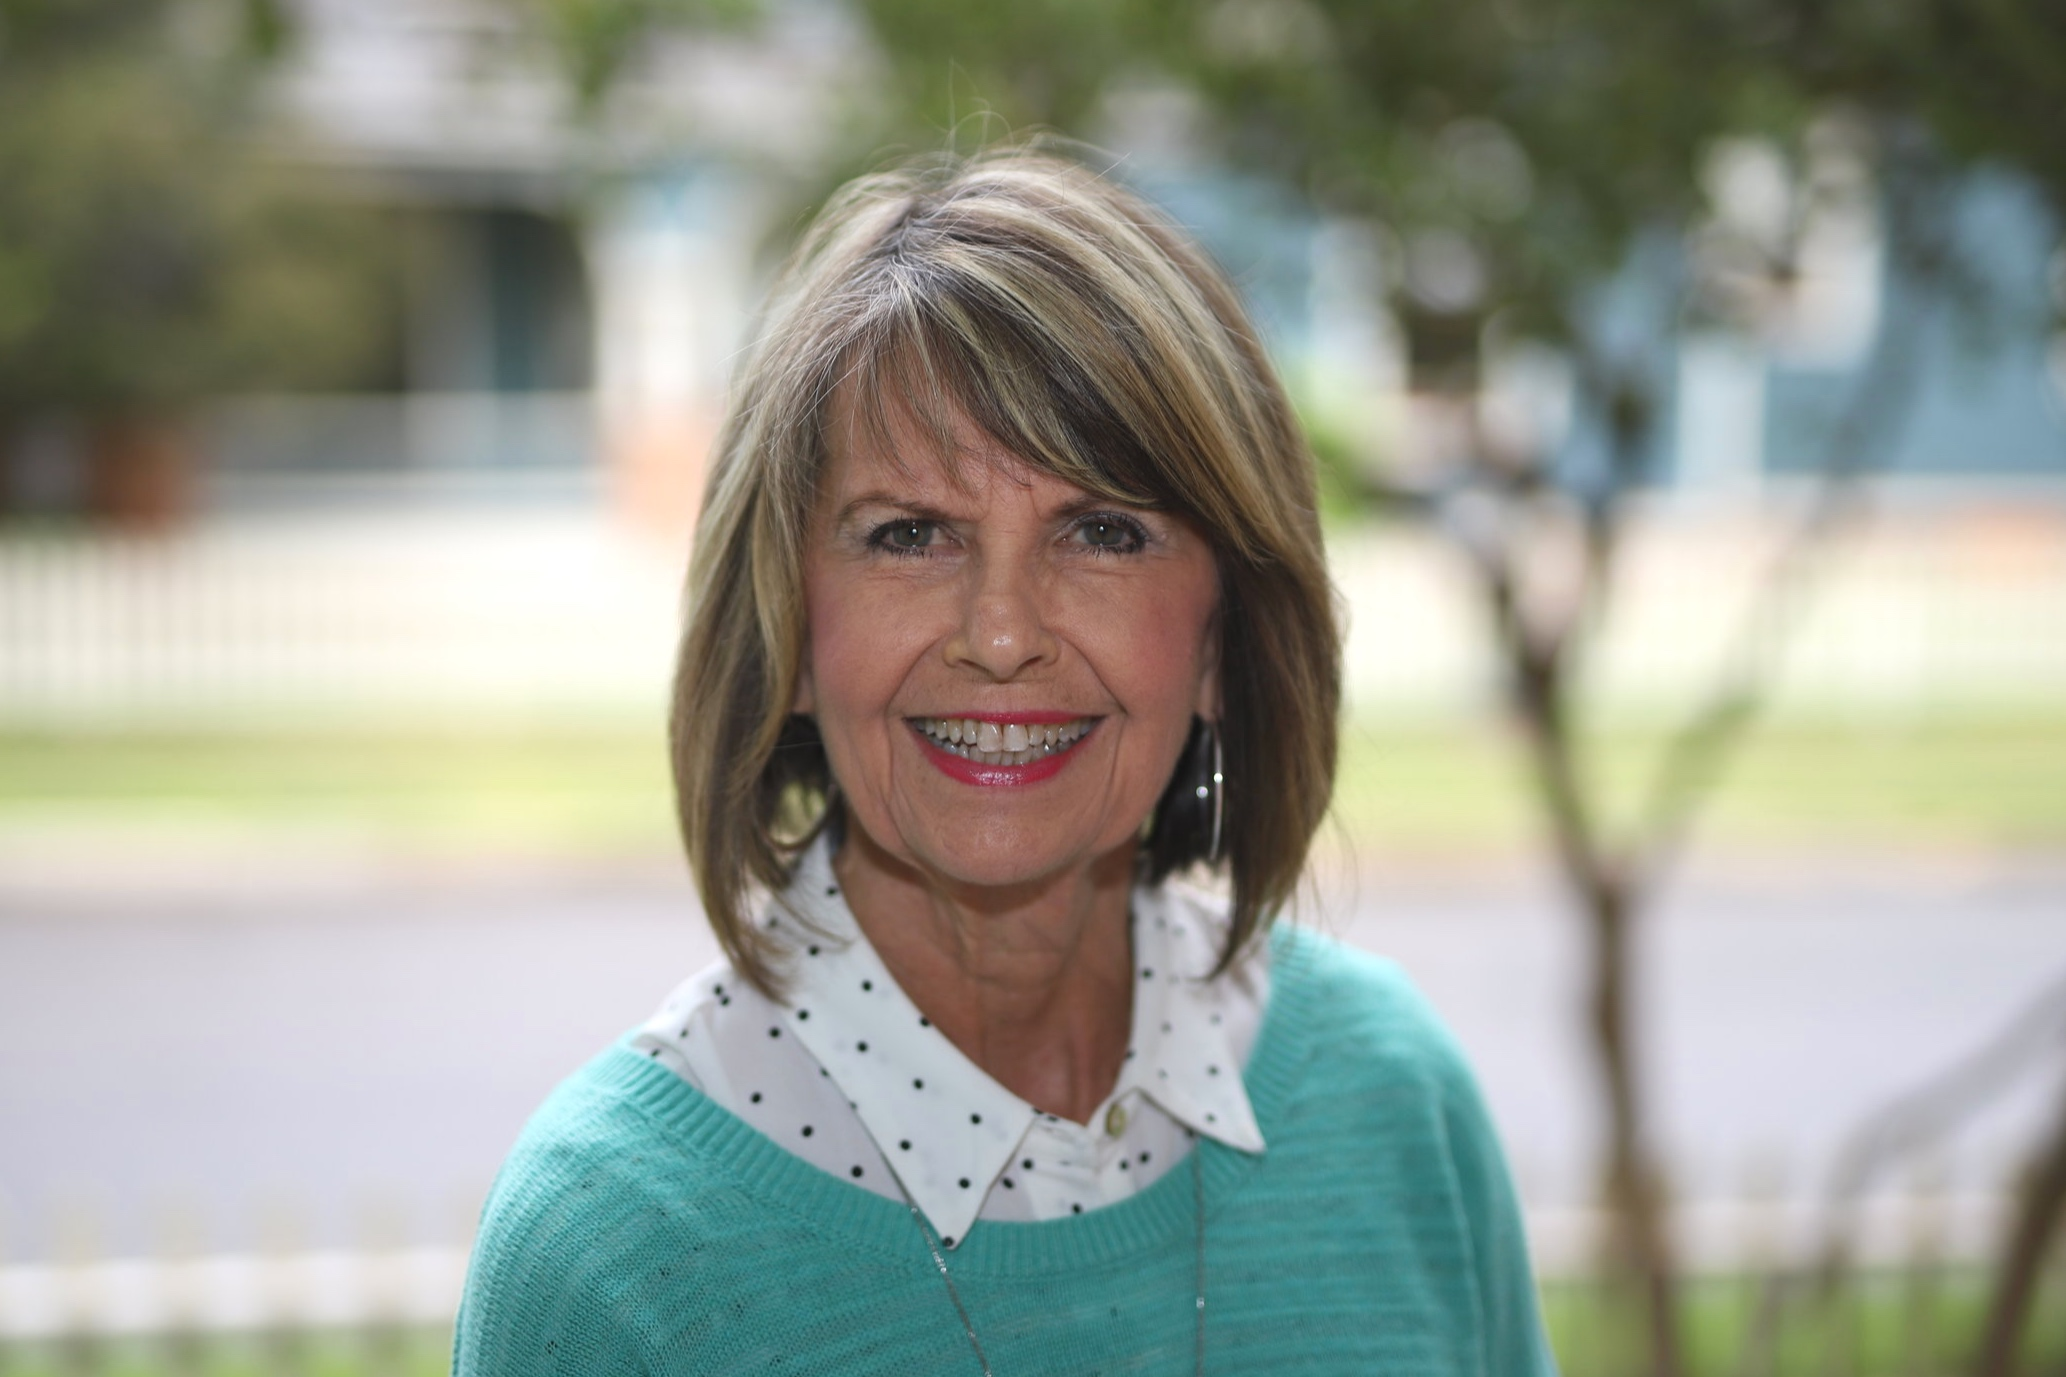 Suzanne joined Behind Every Door Ministries in 2009. Suzanne graduated from the University of North Texas with a degree in biology and a teacher's certification in secondary education. She is also a Certified Language Therapist. In 1990, she and a friend began a ministry to East Dallas Hispanic gang youths now called Cross Fire Ministries. In 1999, she and her husband, John, closed down their suburban church to establish Blood and Fire Ministries on the streets of Deep Ellum, caring for the poor and homeless. They also operated a residential discipleship house for young people needing a radical life change. John and Suzanne have three grown children, Jason, Brennan, who is currently serving in Iraq, and Lindsey.